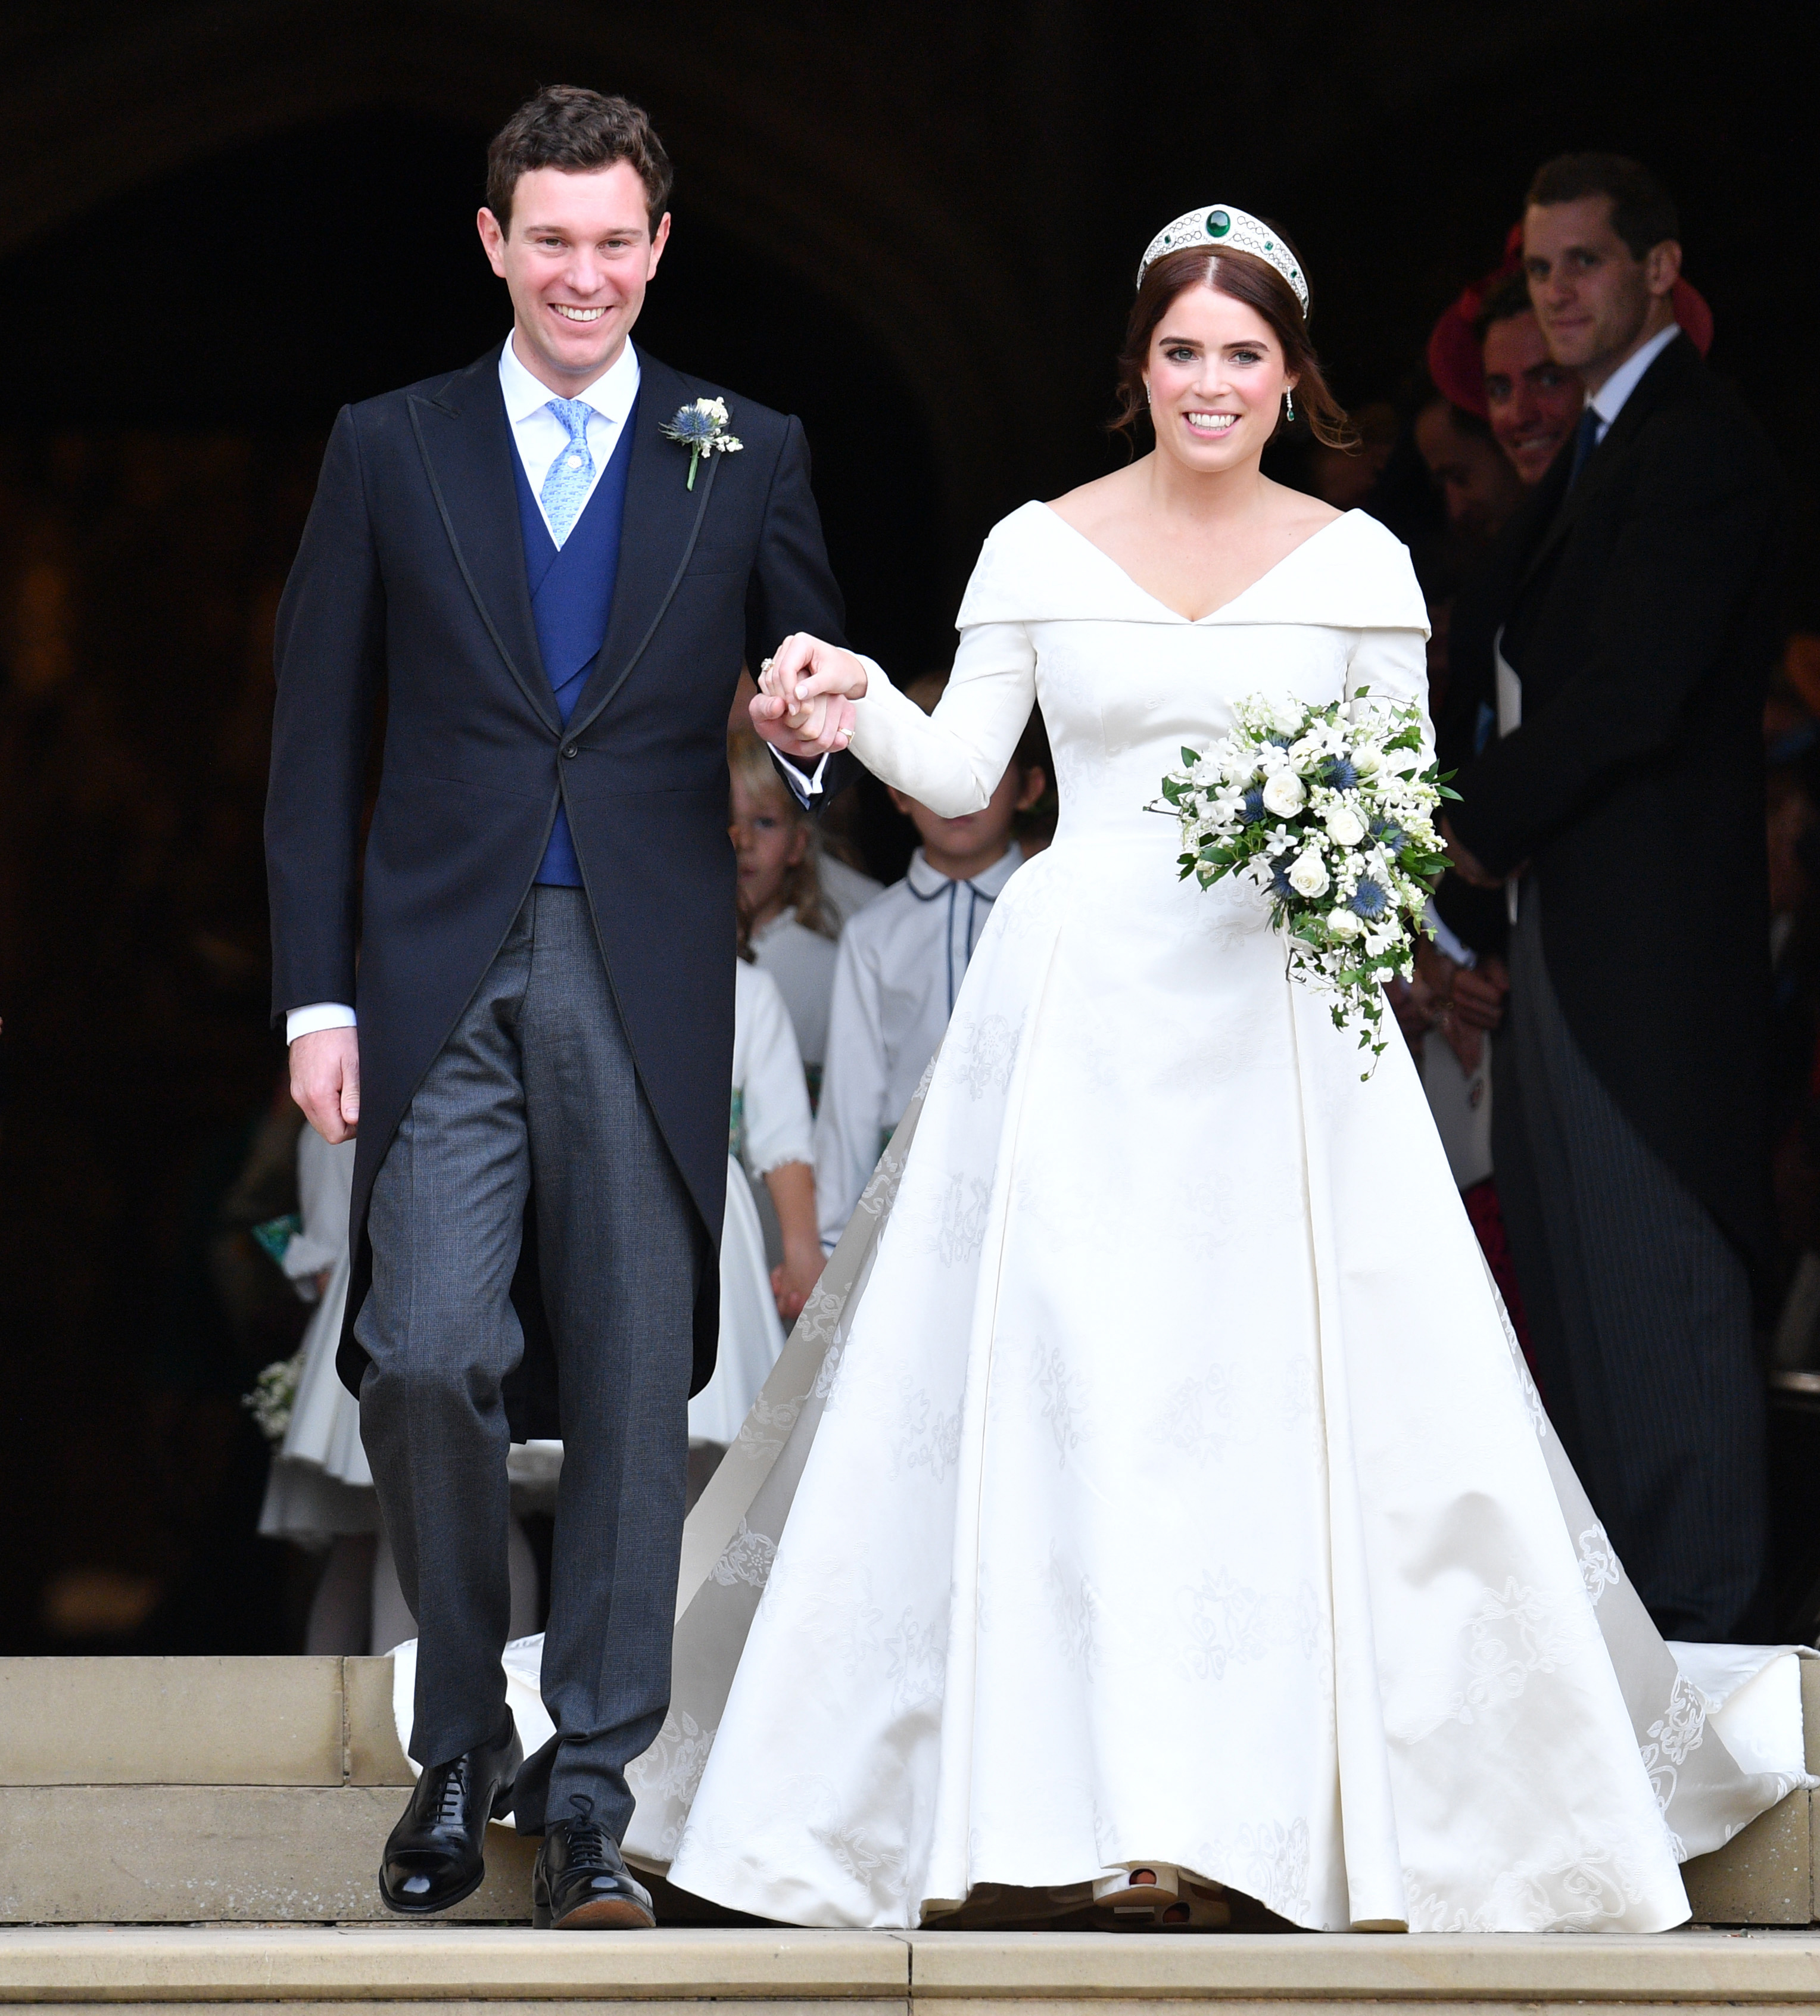 Celebrity Wedding Outfits 2019: Sarah Ferguson Reacts To Speculation That Princess Eugenie